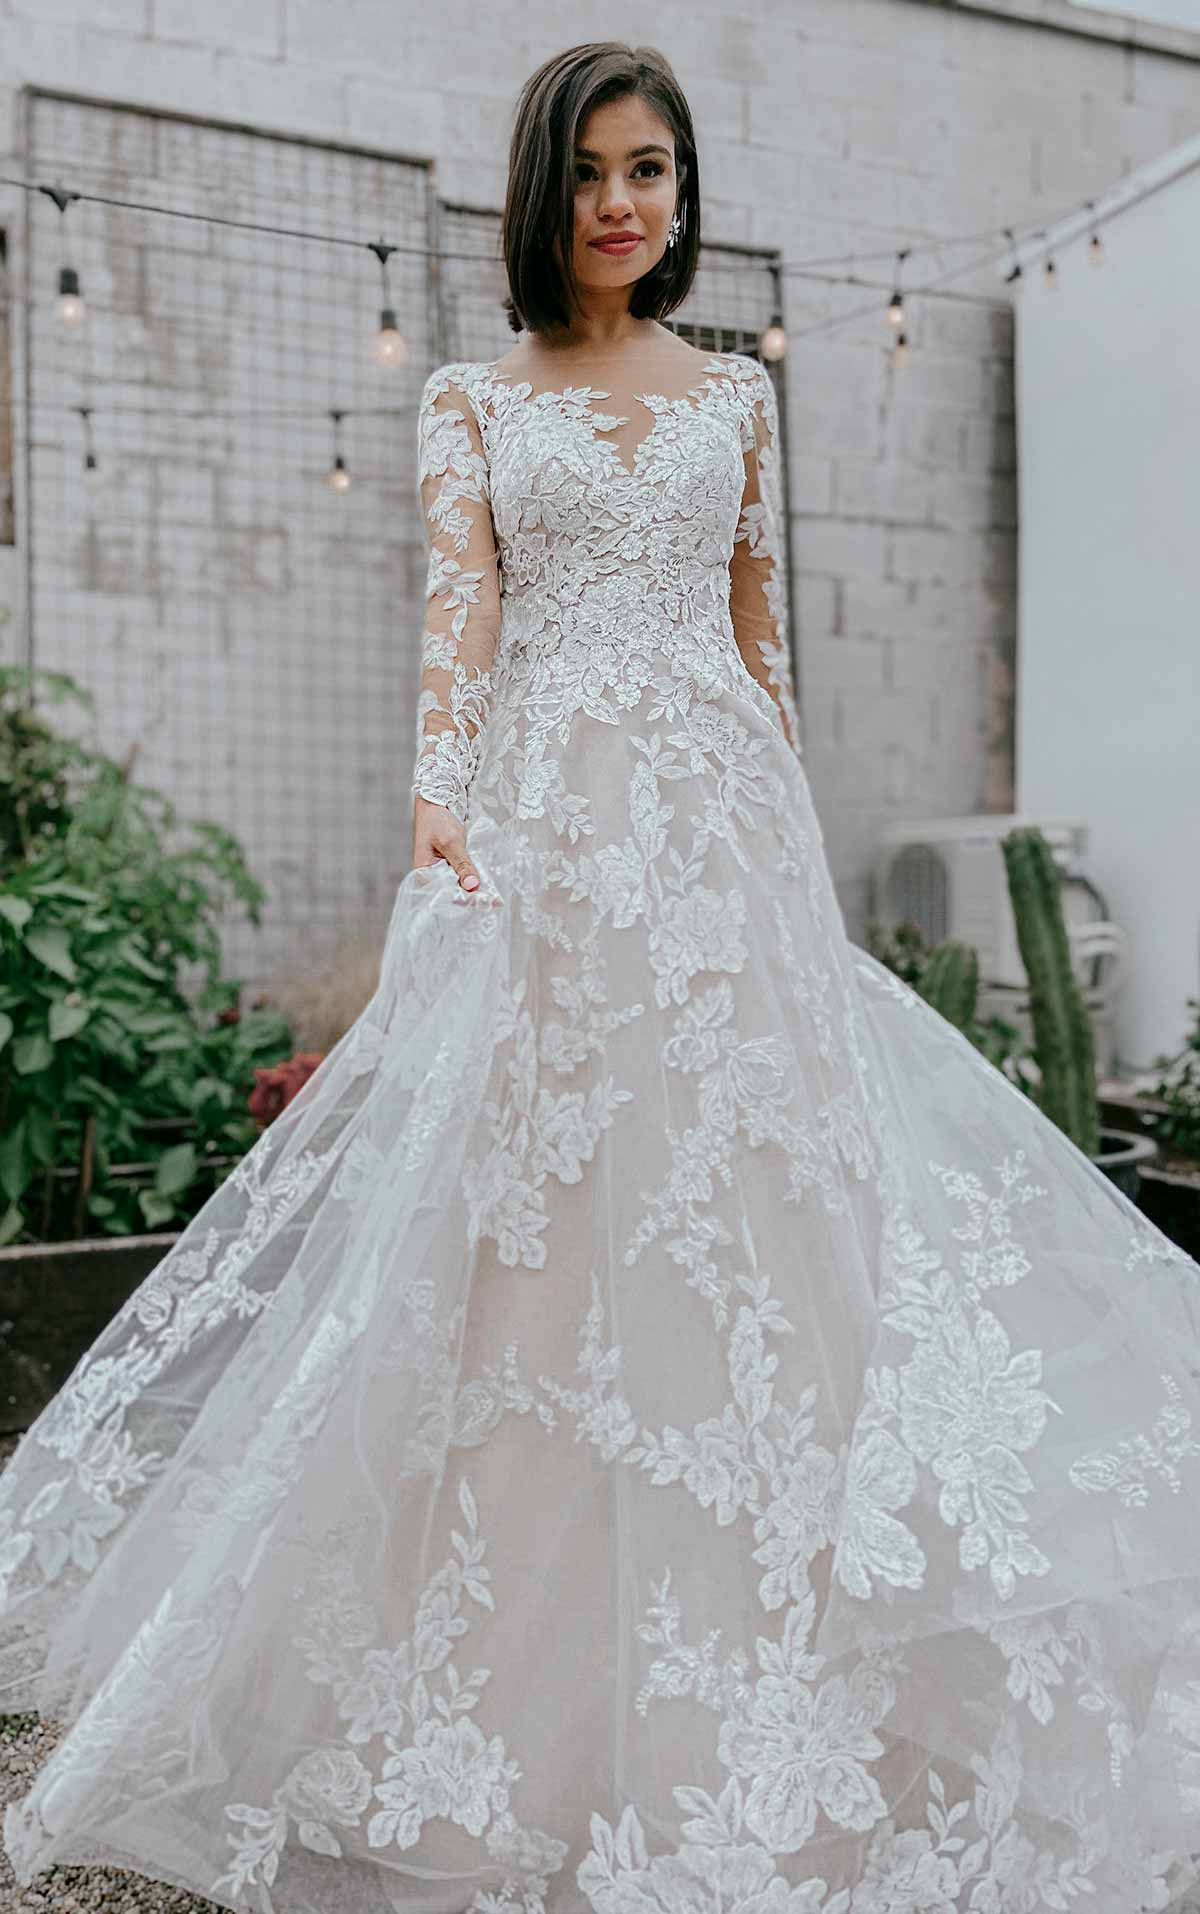 Long a Line Dresses, Long Sleeve Lace Wedding Dress,Dress From Lace,Line Lace Wedding Dresses,Bridal Lace Dresses with Sleeves ,Lightweight Lace Wedding Dresses,Lace Wedding Dress with Stones,Lace Wedding Dress with Jewelry,Sleeve A-Line Wedding Dress,Long Elegant Wedding Dresses with Sleeves,Wedding Gowns with Sheer, Lace Arm Wedding Dresses,Wedding Dress Lace,Cheap Wedding Gowns with Sleeves,Long Sleeved Wedding Dress,wedding dresses sleeves,wedding dresses with long sleeves,Long Sleeve Lace Wedding Dresses,A Line Dress with Sleeves,lacy wedding dress,A-Line Wedding Dresses,Long Sleeve Lace Wedding Dress,Lace Wedding Dress with Sleeves,Traditional Lace Wedding Dresses,Wedding Dresses with Lace,a line lace wedding dress,Wedding Dress Sleeves,Long Sleeve Lace Wedding Gown,Lace Floor Length Dresses,Lace Arm Wedding Dress,